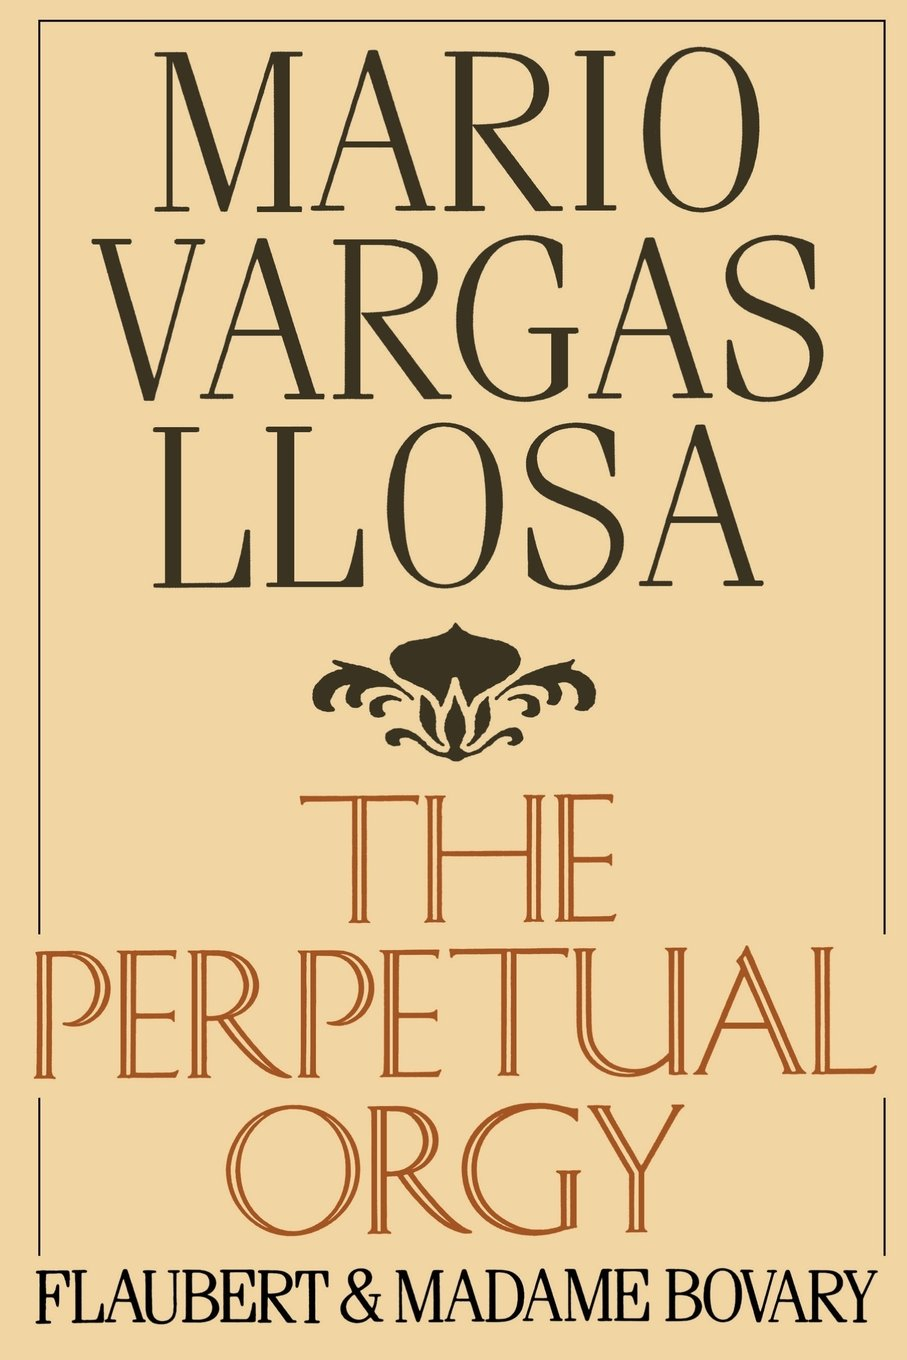 com the perpetual orgy flaubert and madame bovary com the perpetual orgy flaubert and madame bovary 9780374520625 mario vargas llosa helen lane books